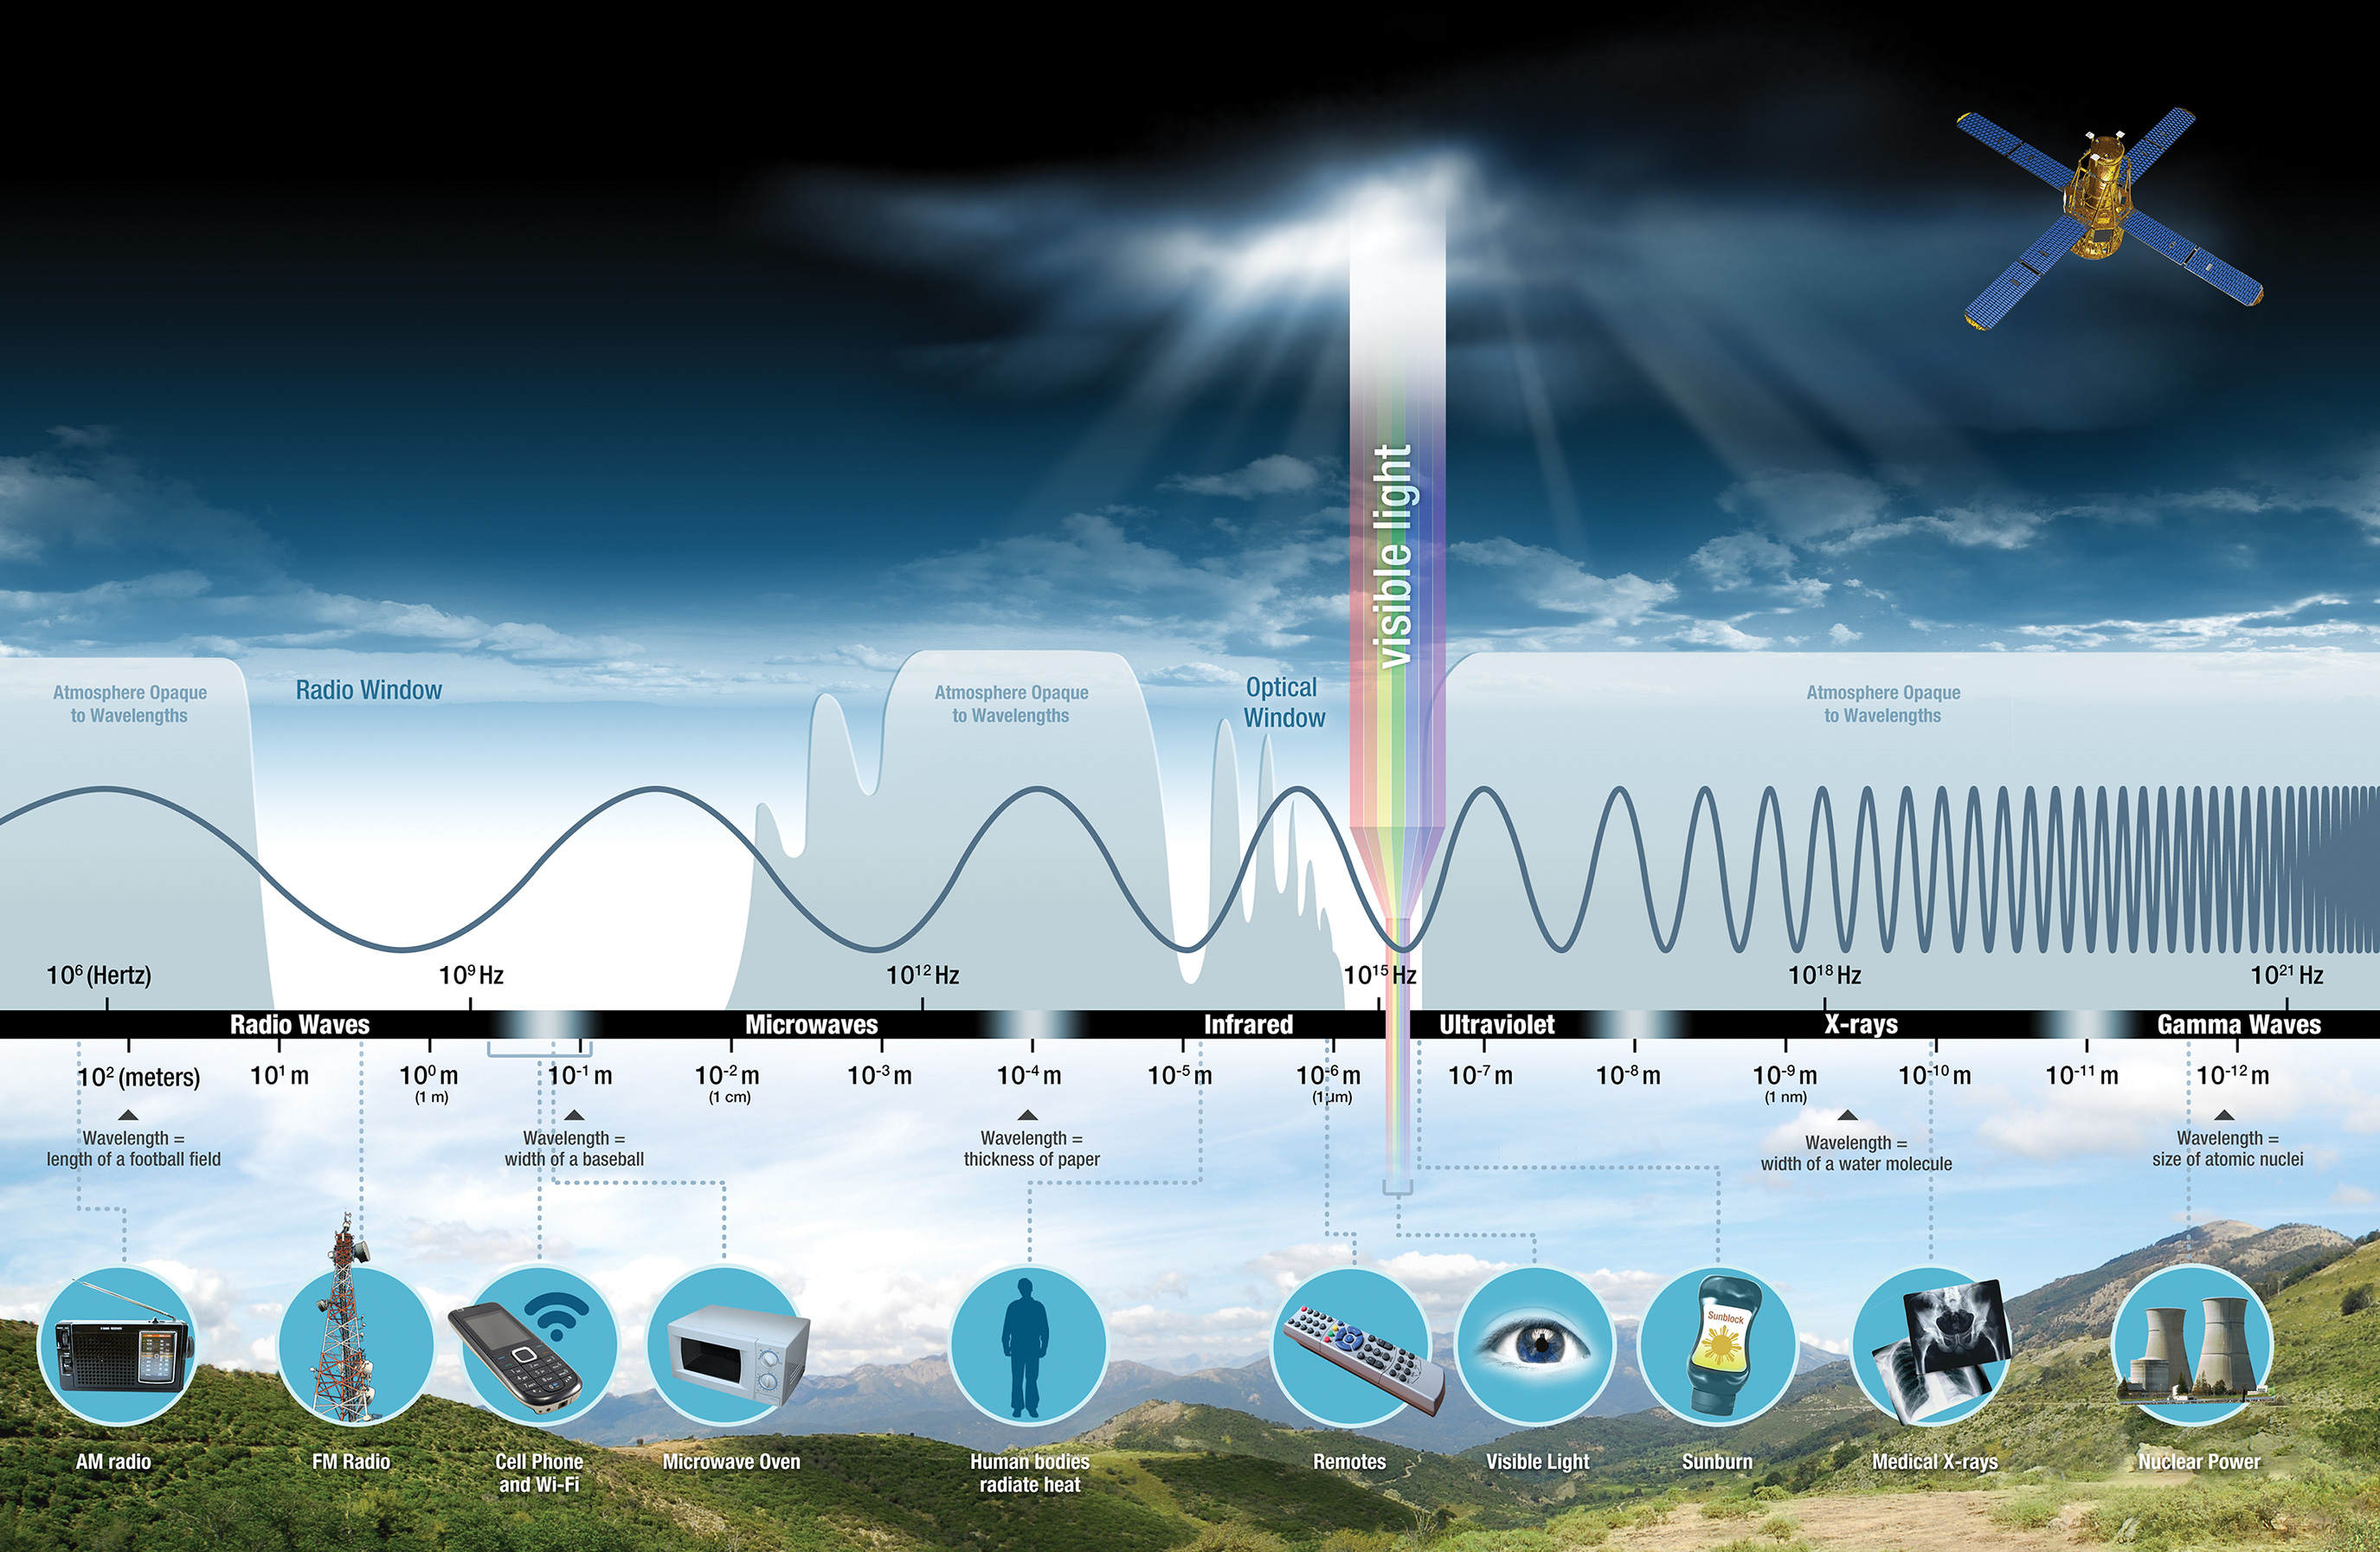 Atmospheric transparency to electromagnetic radiation